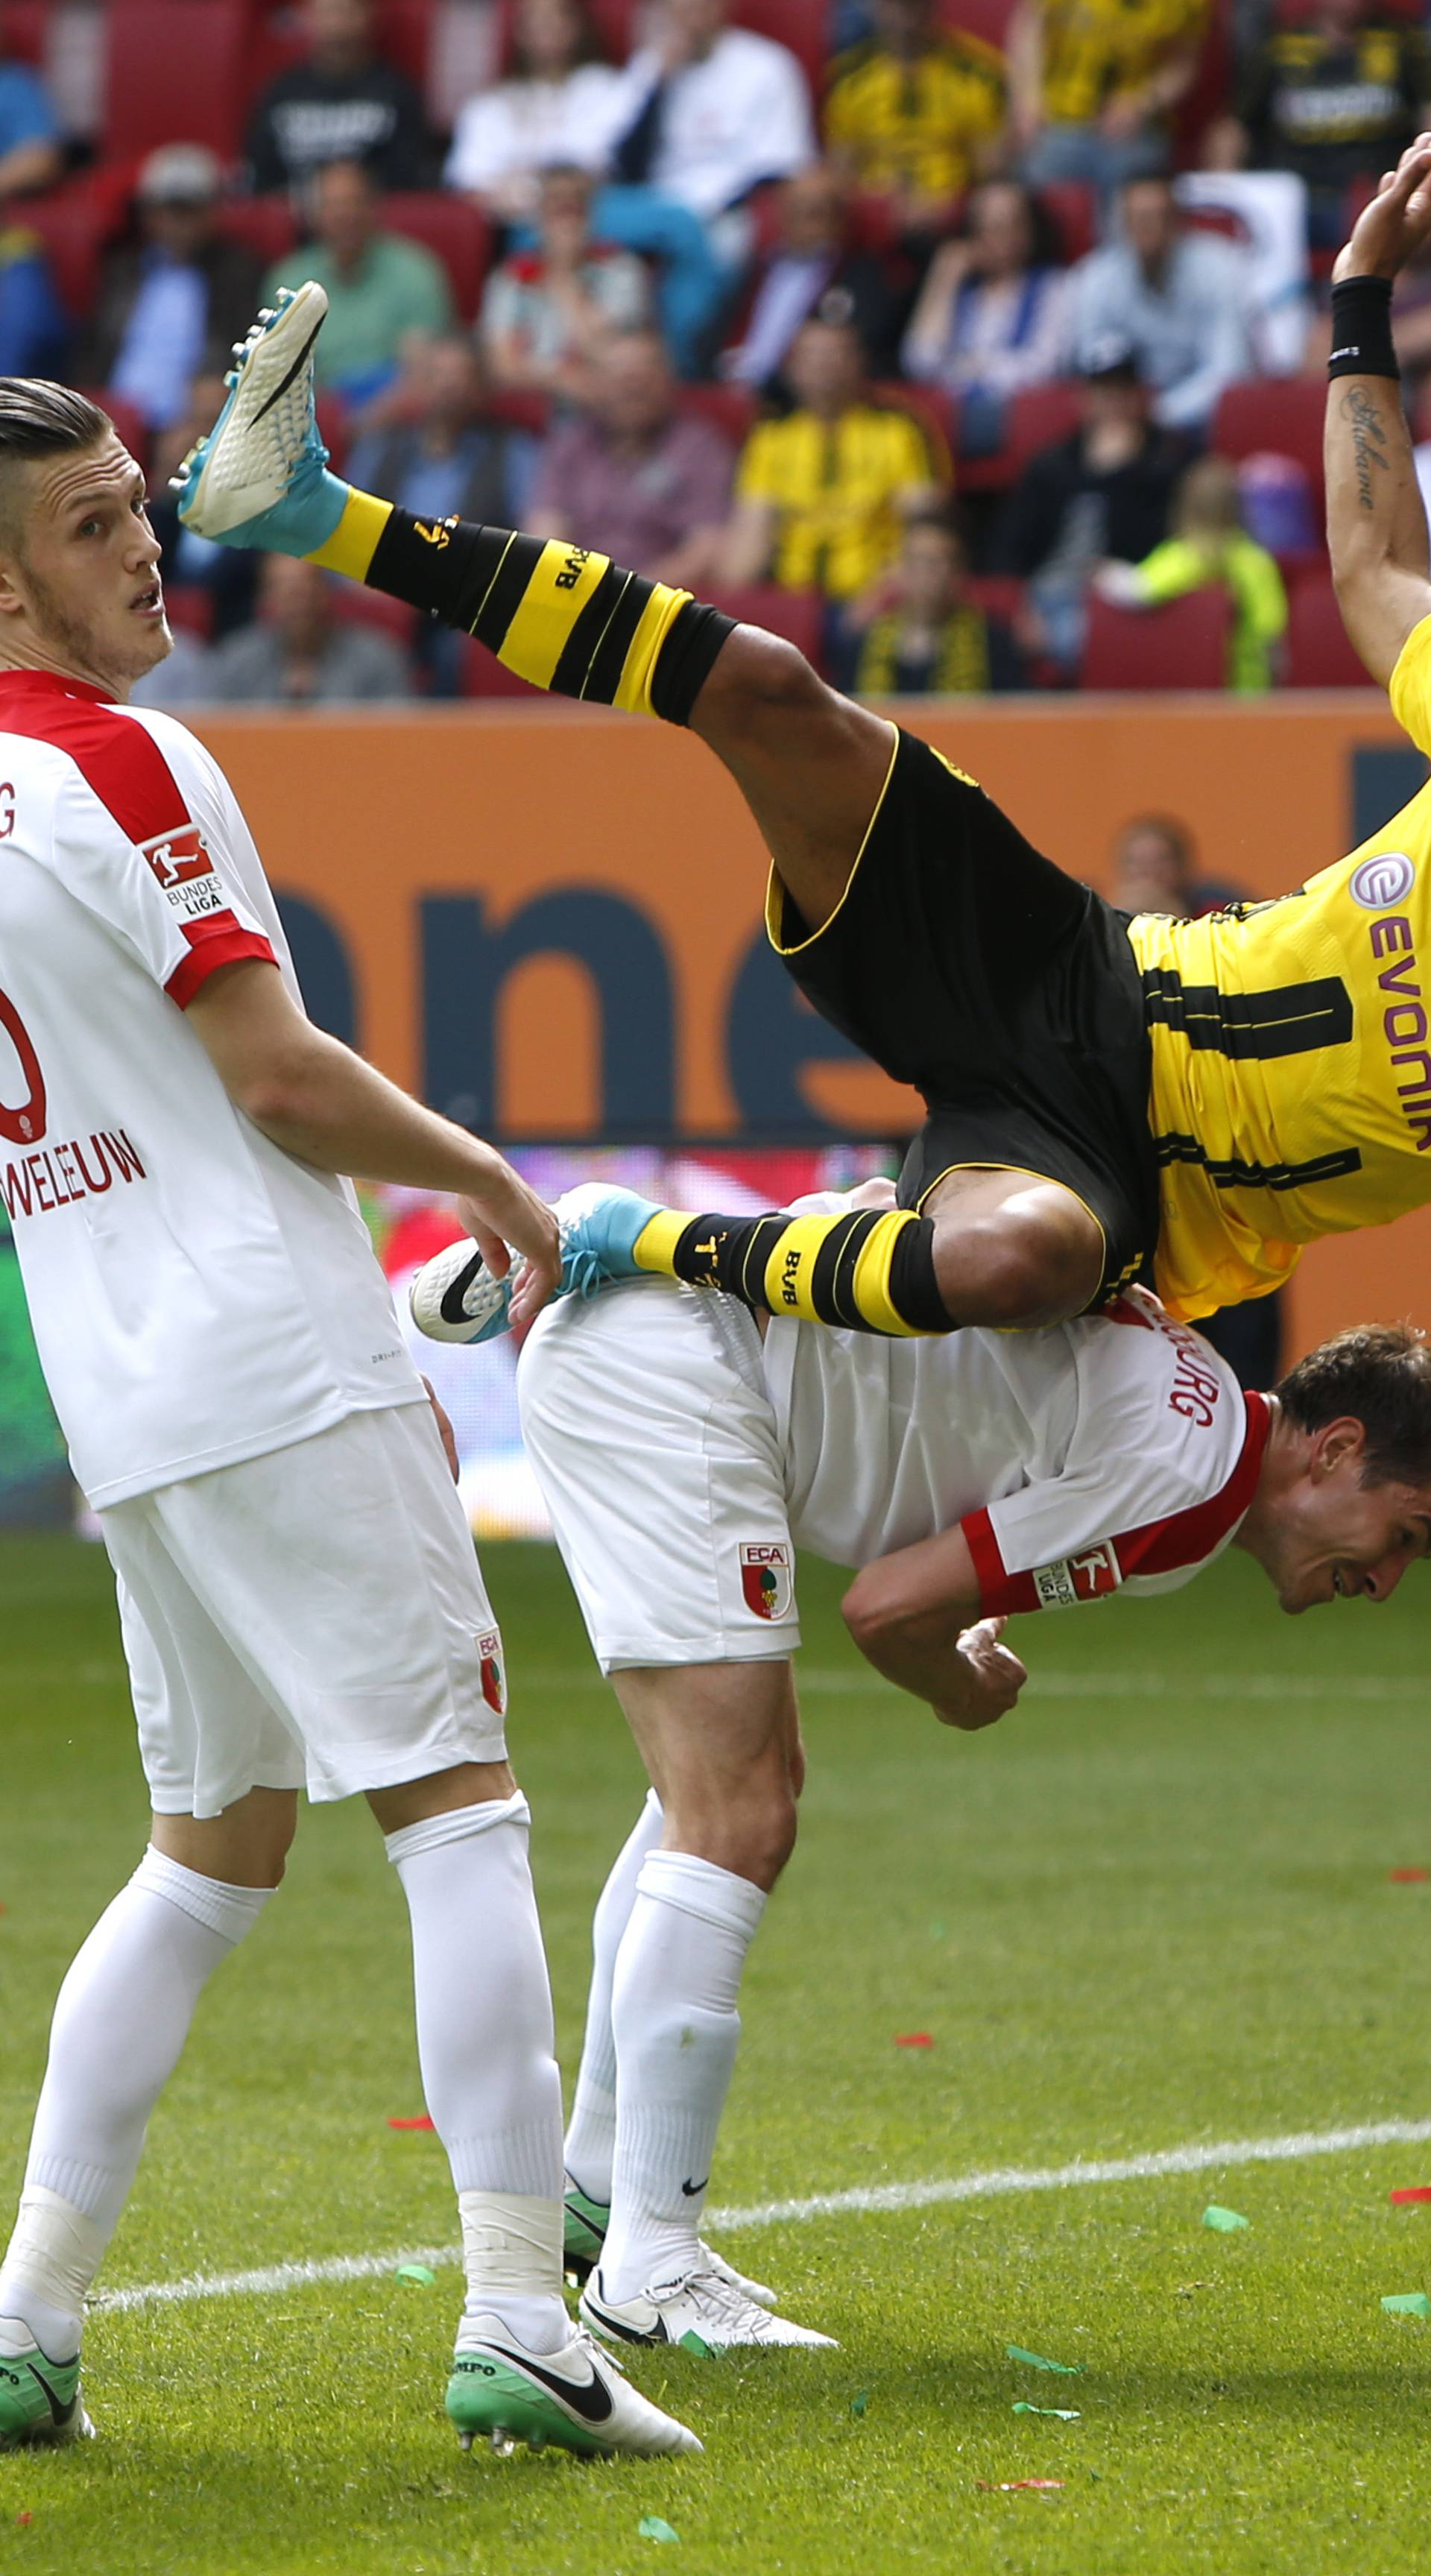 Borussia Dortmund's Pierre-Emerick Aubameyang in action